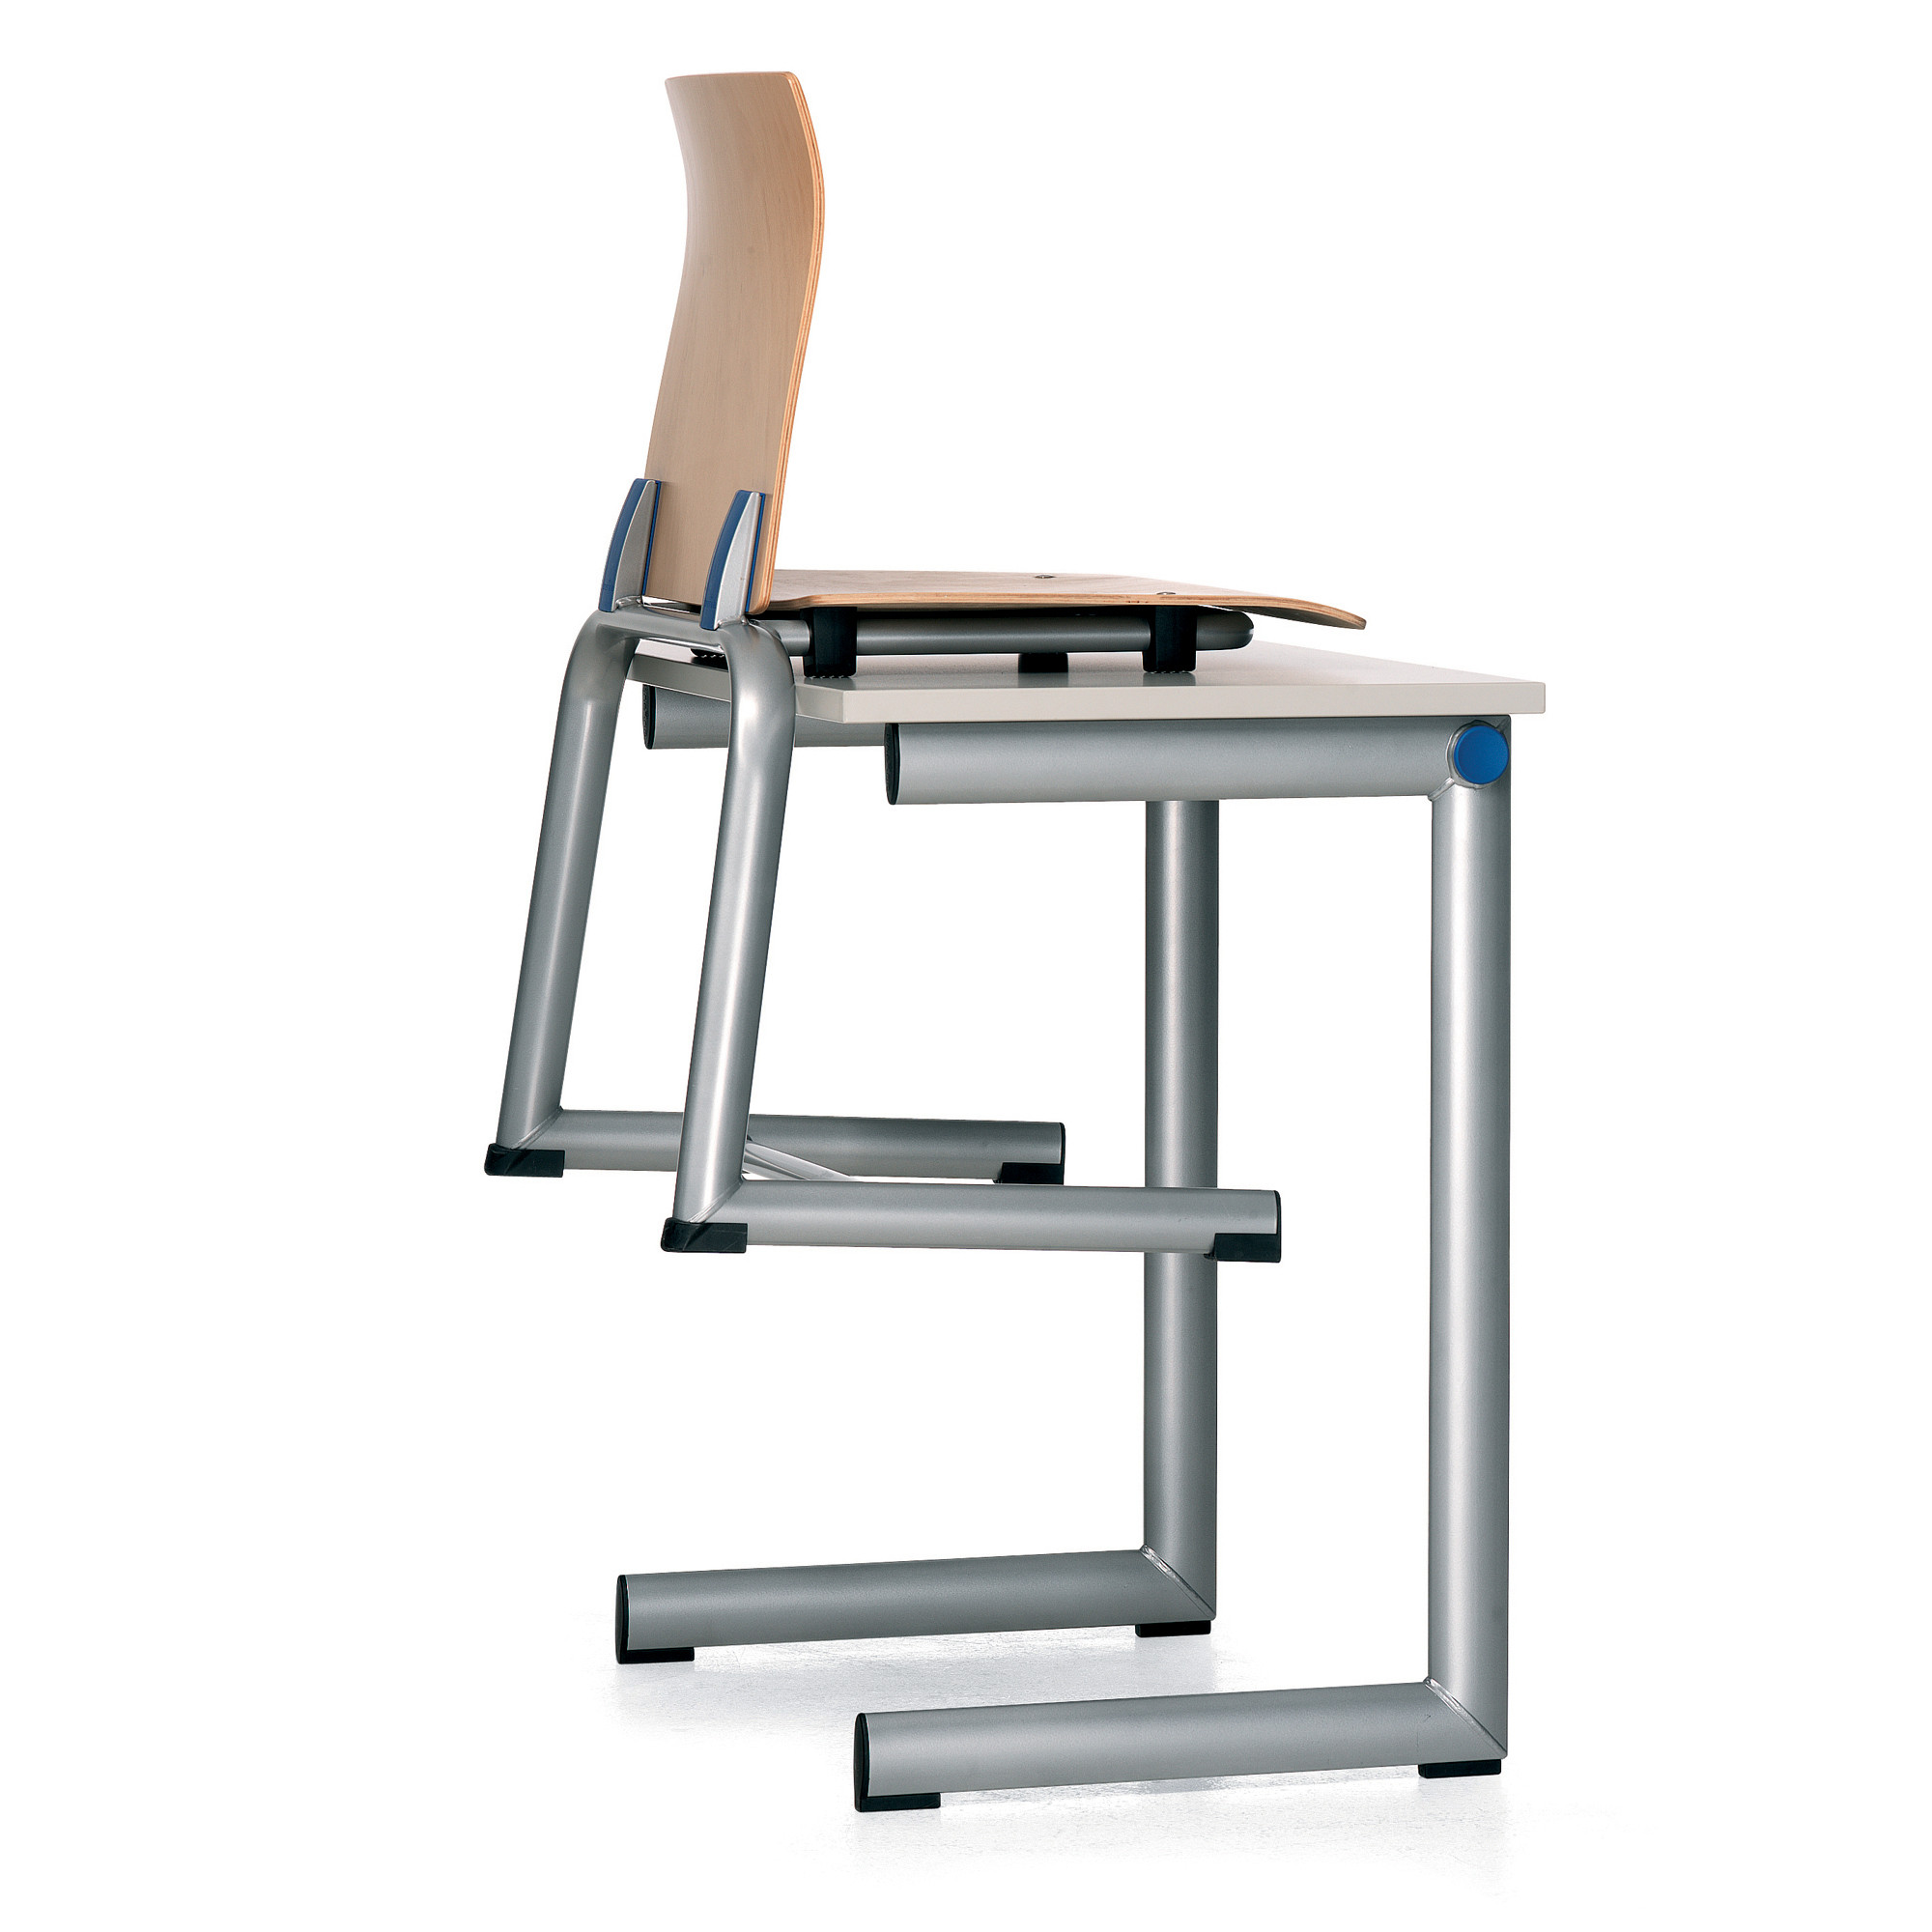 Ahrend 452 Secondary School Desk